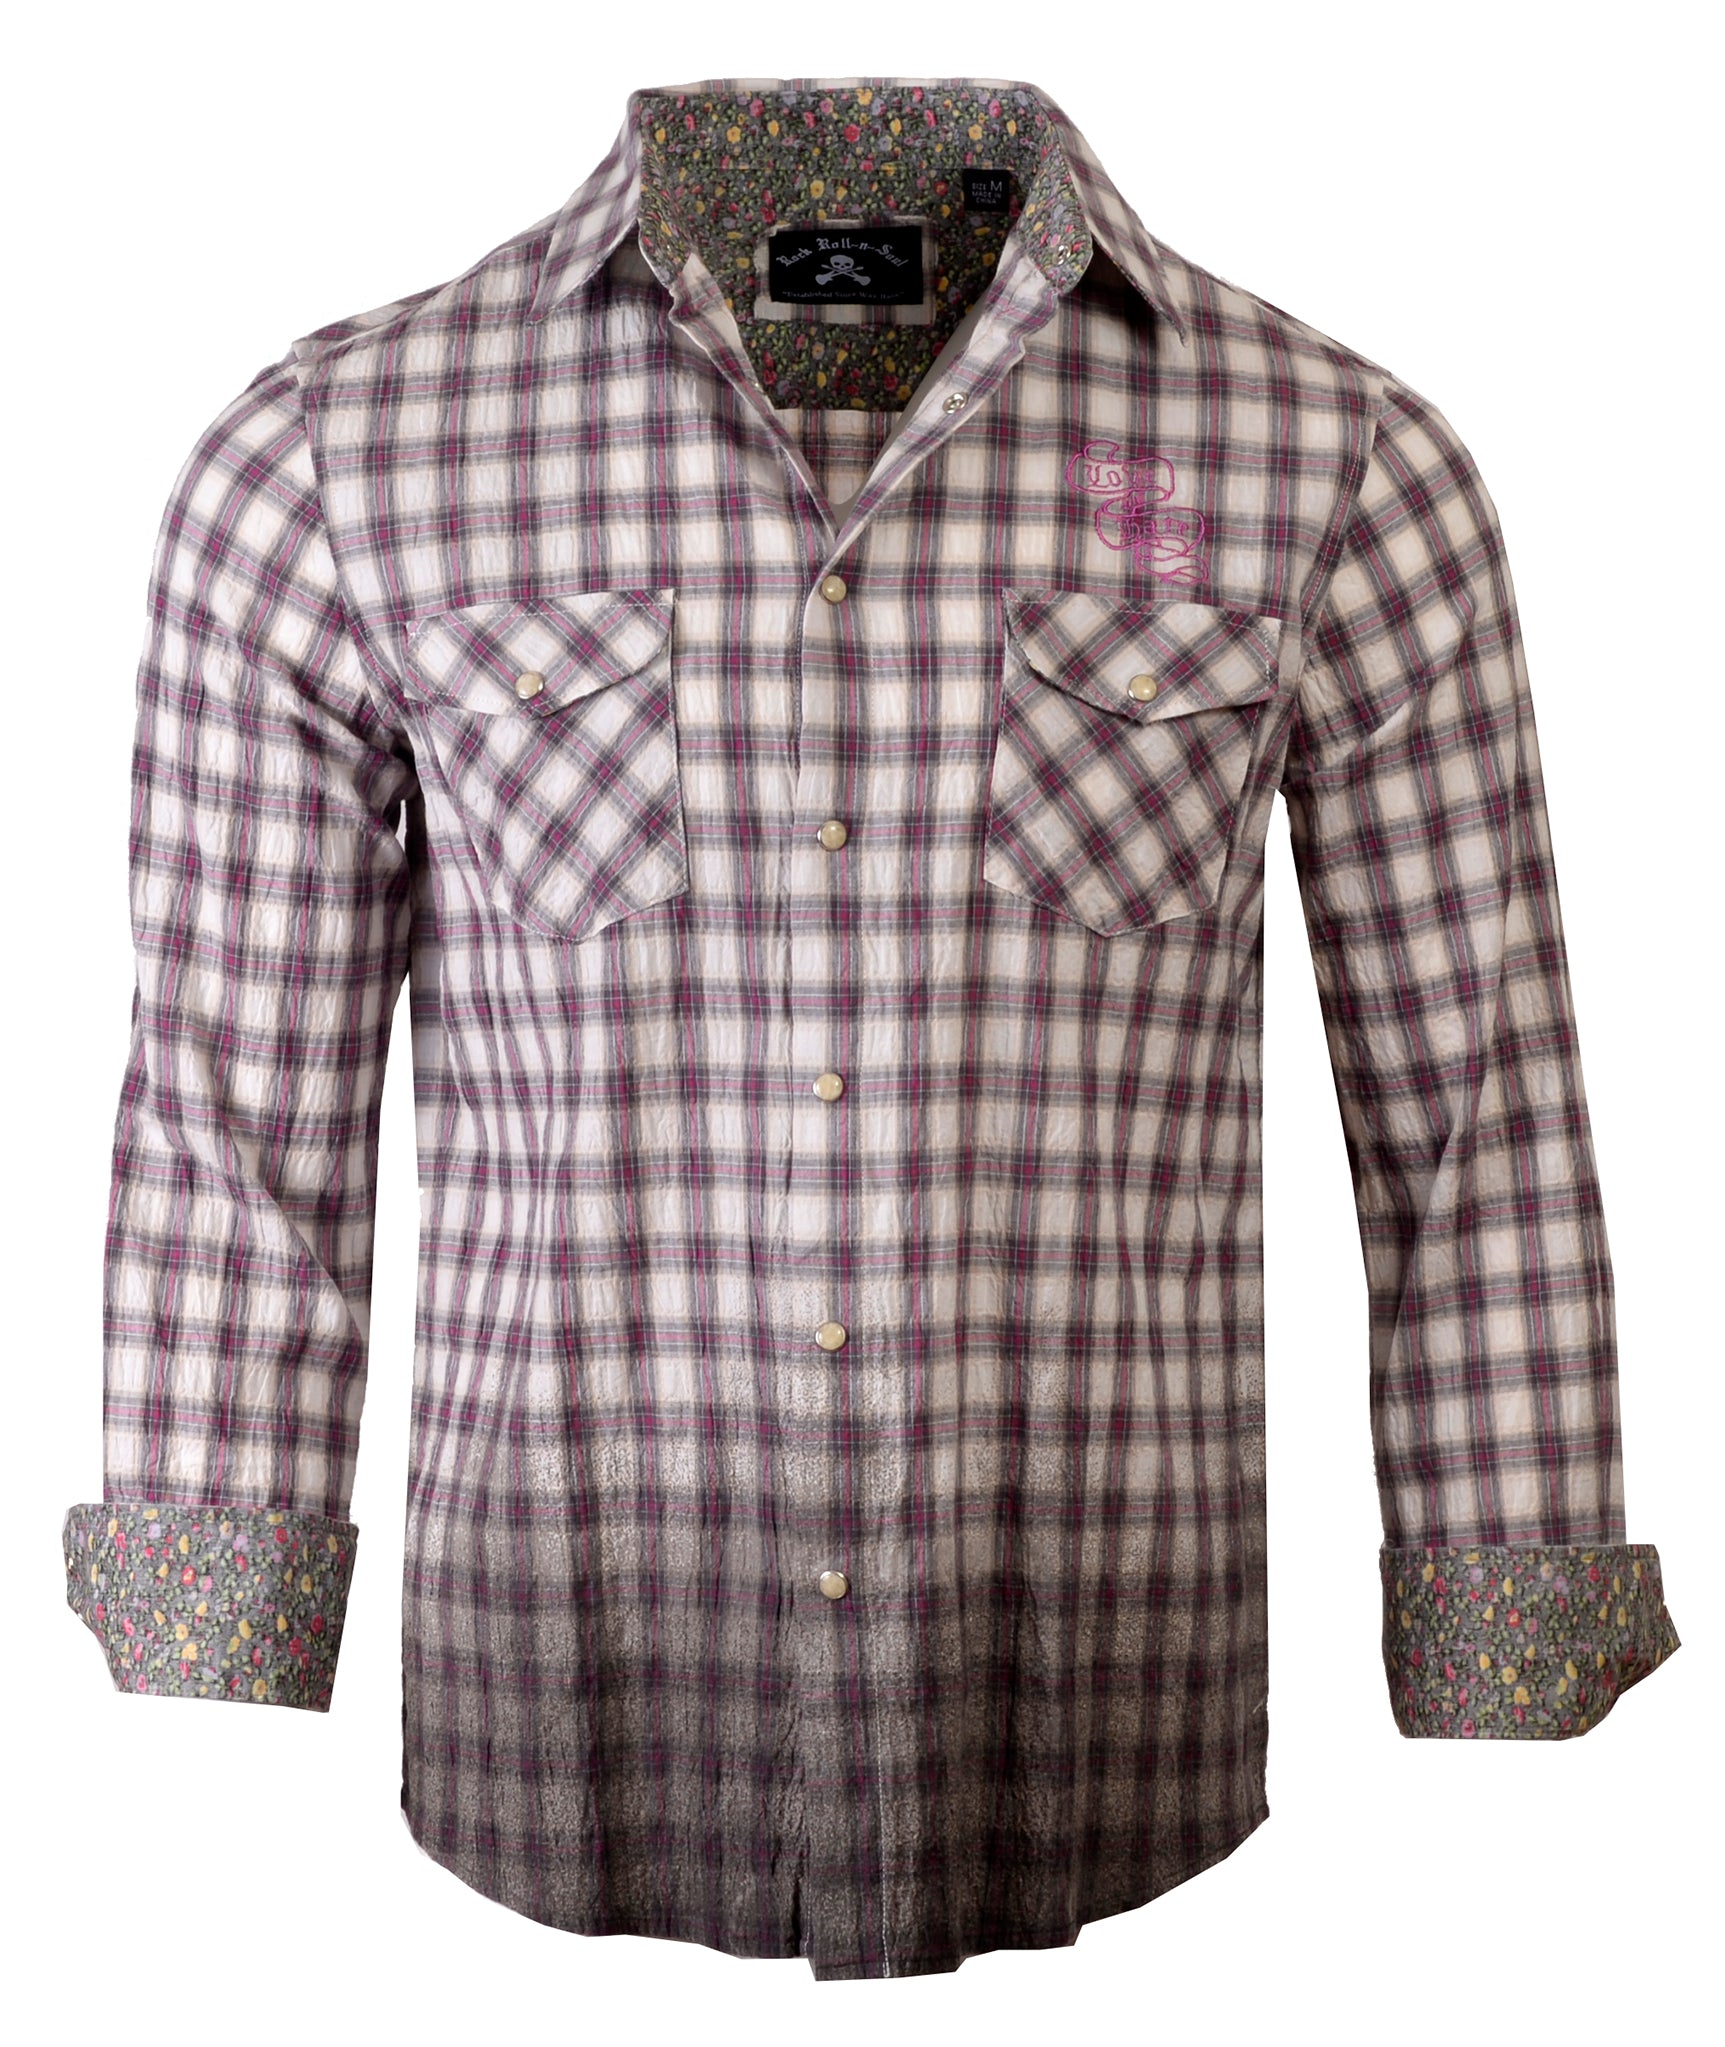 Men's Casual Fashion Button Up Shirt - In the End Fuchsia Dip Dyed by Rock Roll n Soul